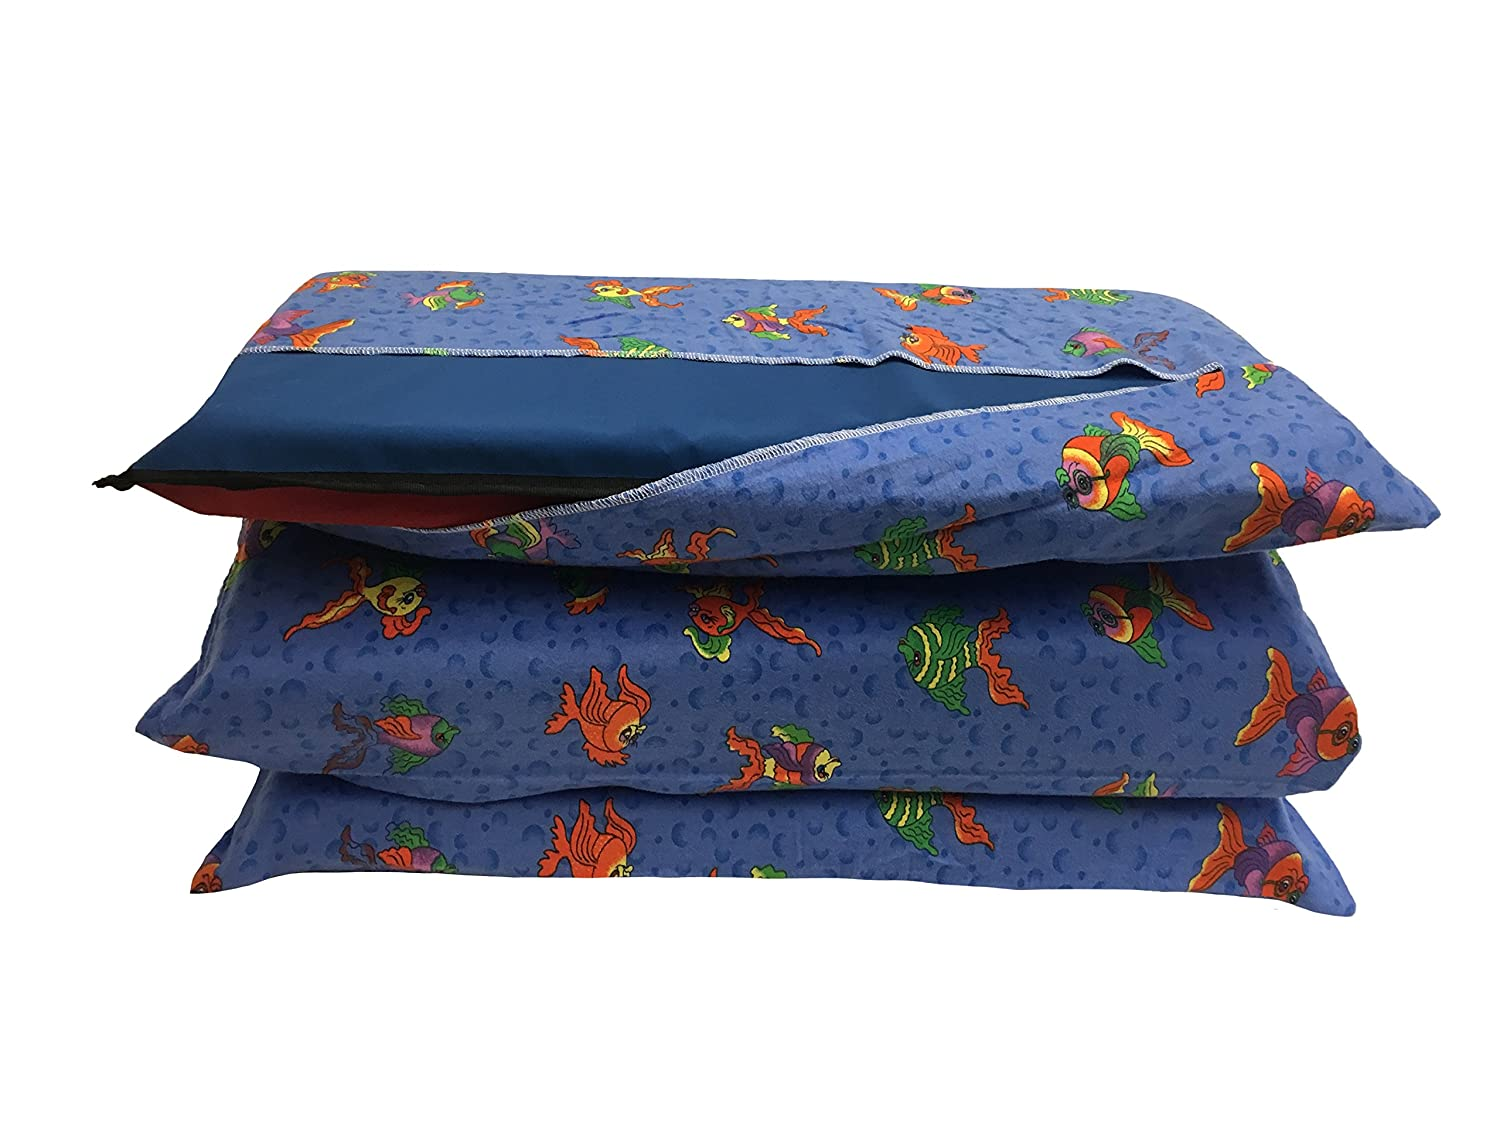 Amazon KinderMat Cover Pillowcase Style Full Sheet For Rest Mats Roughly 24 X 48 Inches Large Ocean And Fish Blue 100 Cotton Flannel Home